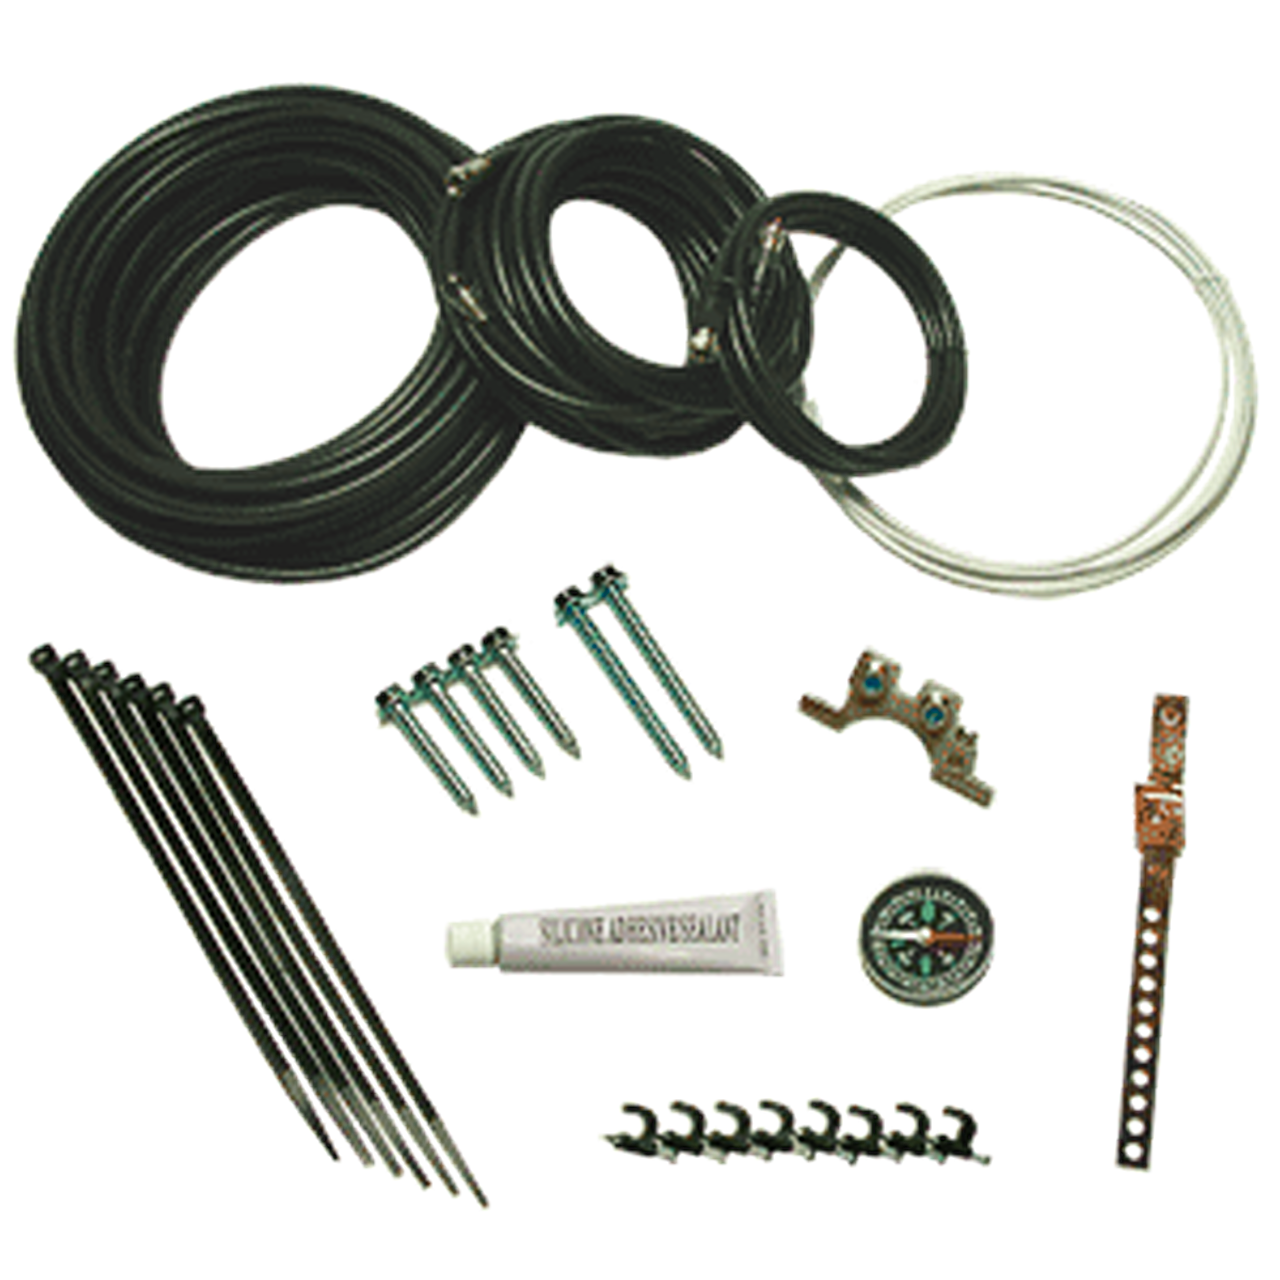 CN - INSTALL PARTS - GEOSATPRO DELUXE SUPPLIES